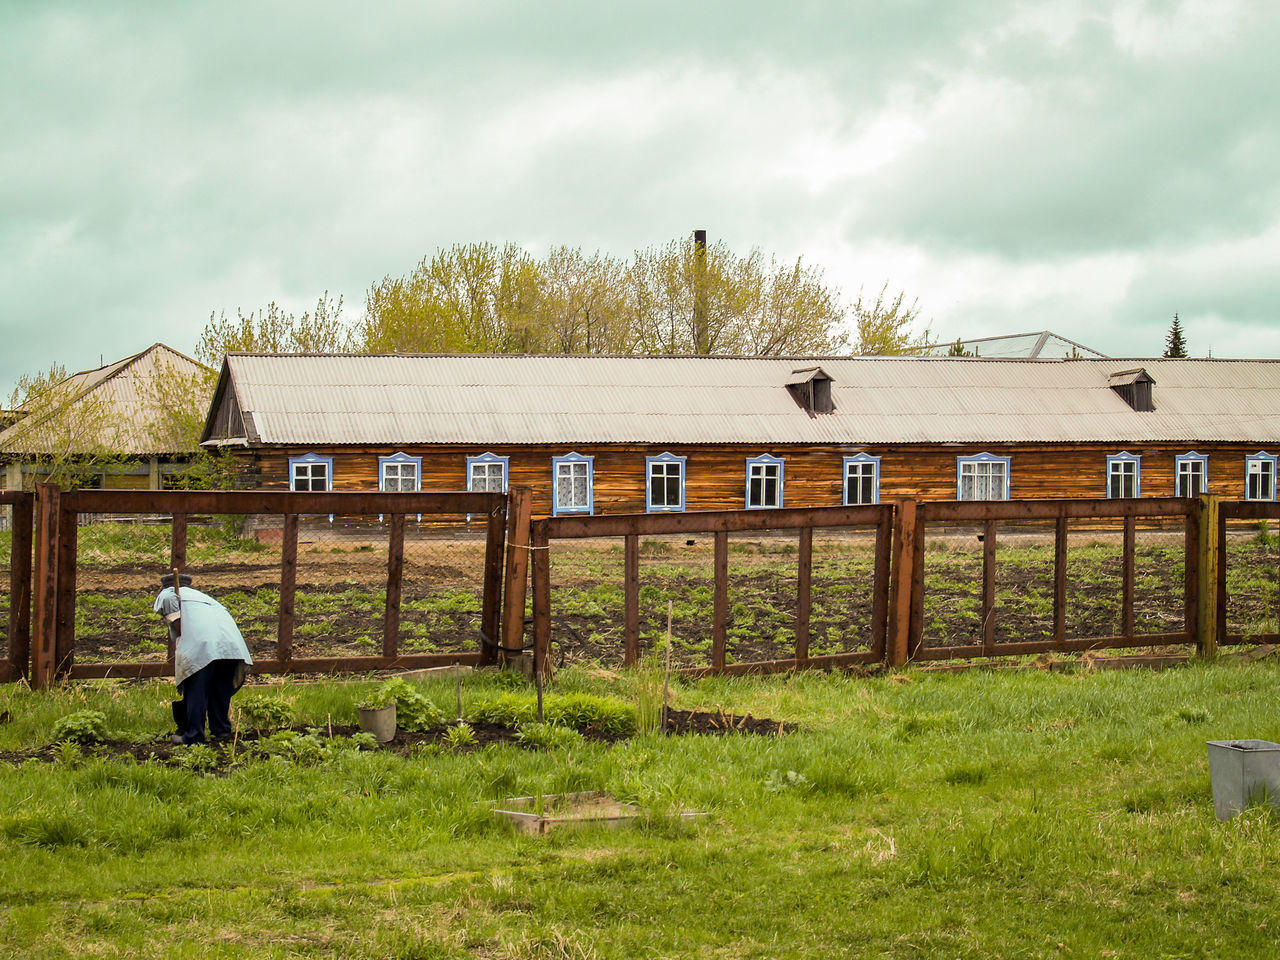 Agriculture ASIA Building Exterior Built Structure Cloud Cloud - Sky Cloudy Day Grass Grassy Green Color Growth Lifestyles Nature Outdoors Plant Rural Scene Russia Siberia Sky Streetphotography Travel Woman Working Women Worldwide_shot